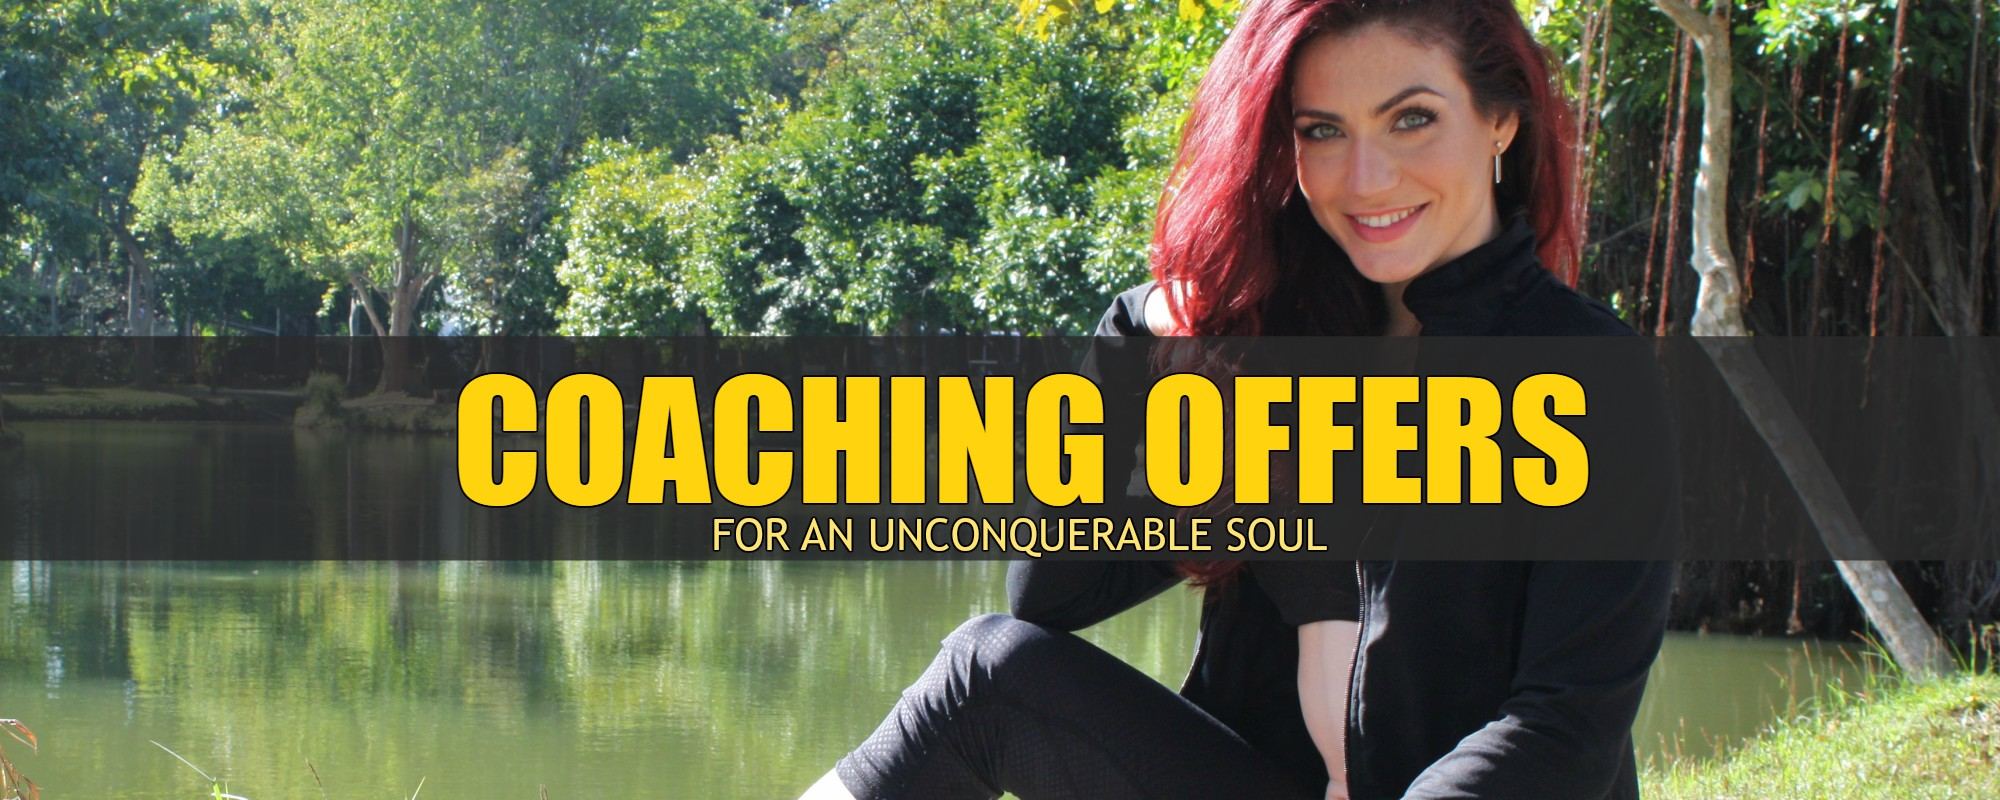 coaching offers for an unconquerable soul